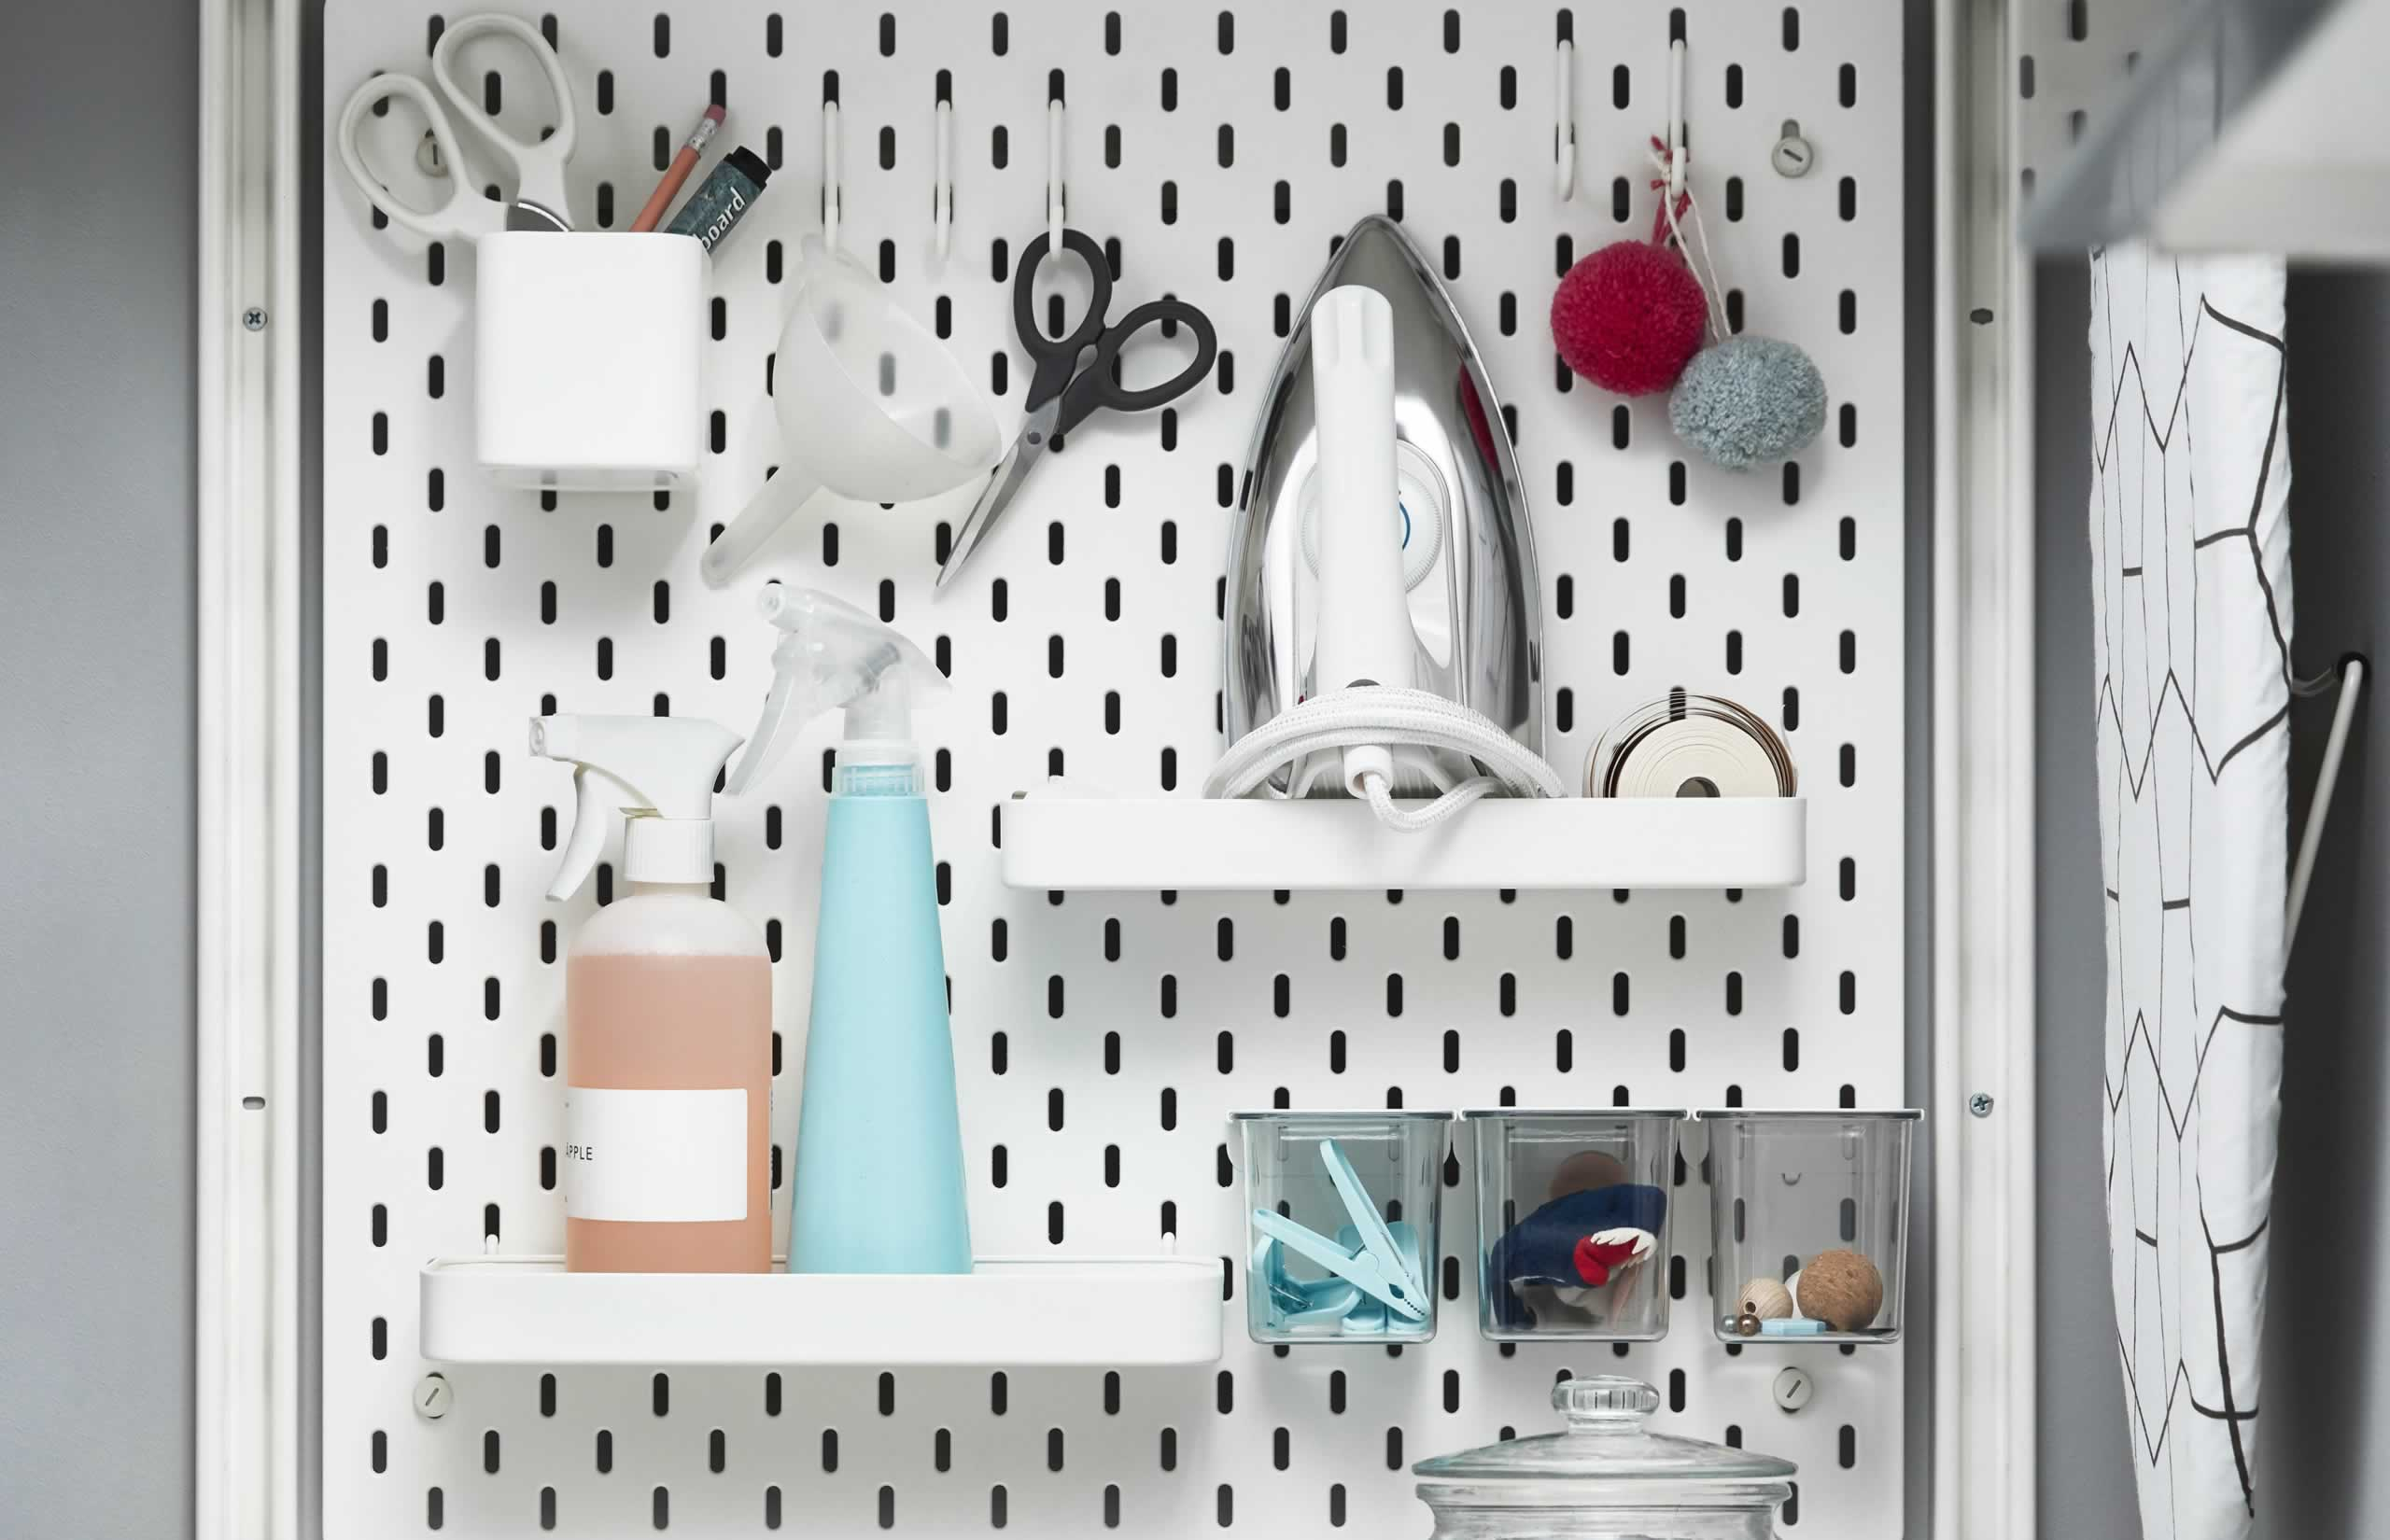 IKEA Ideas - Top tips to organise your laundry